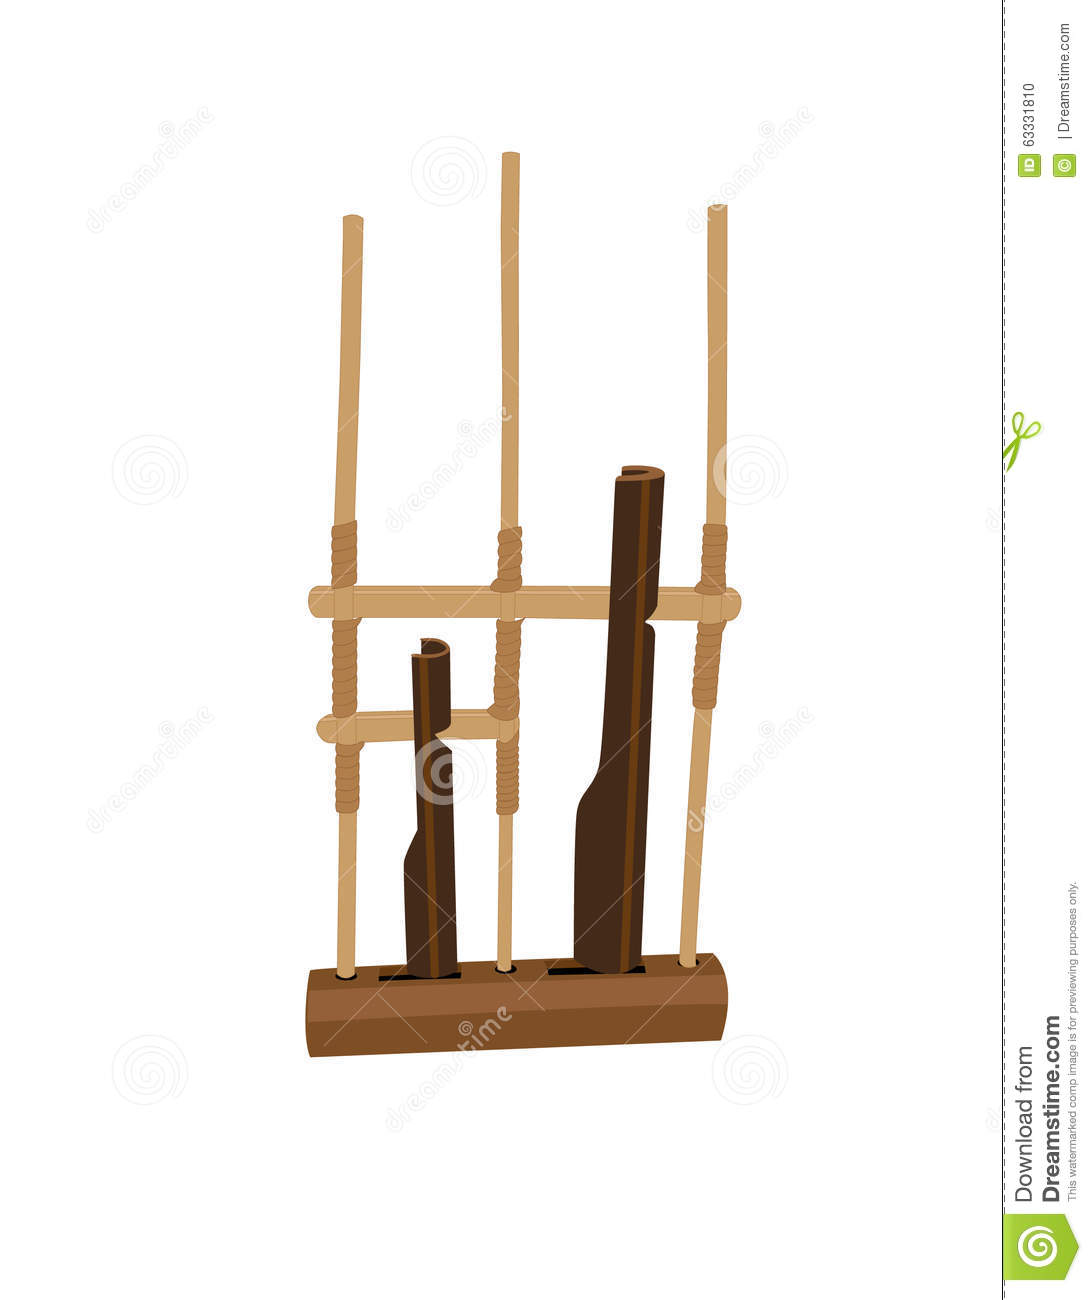 Angklung clipart #17